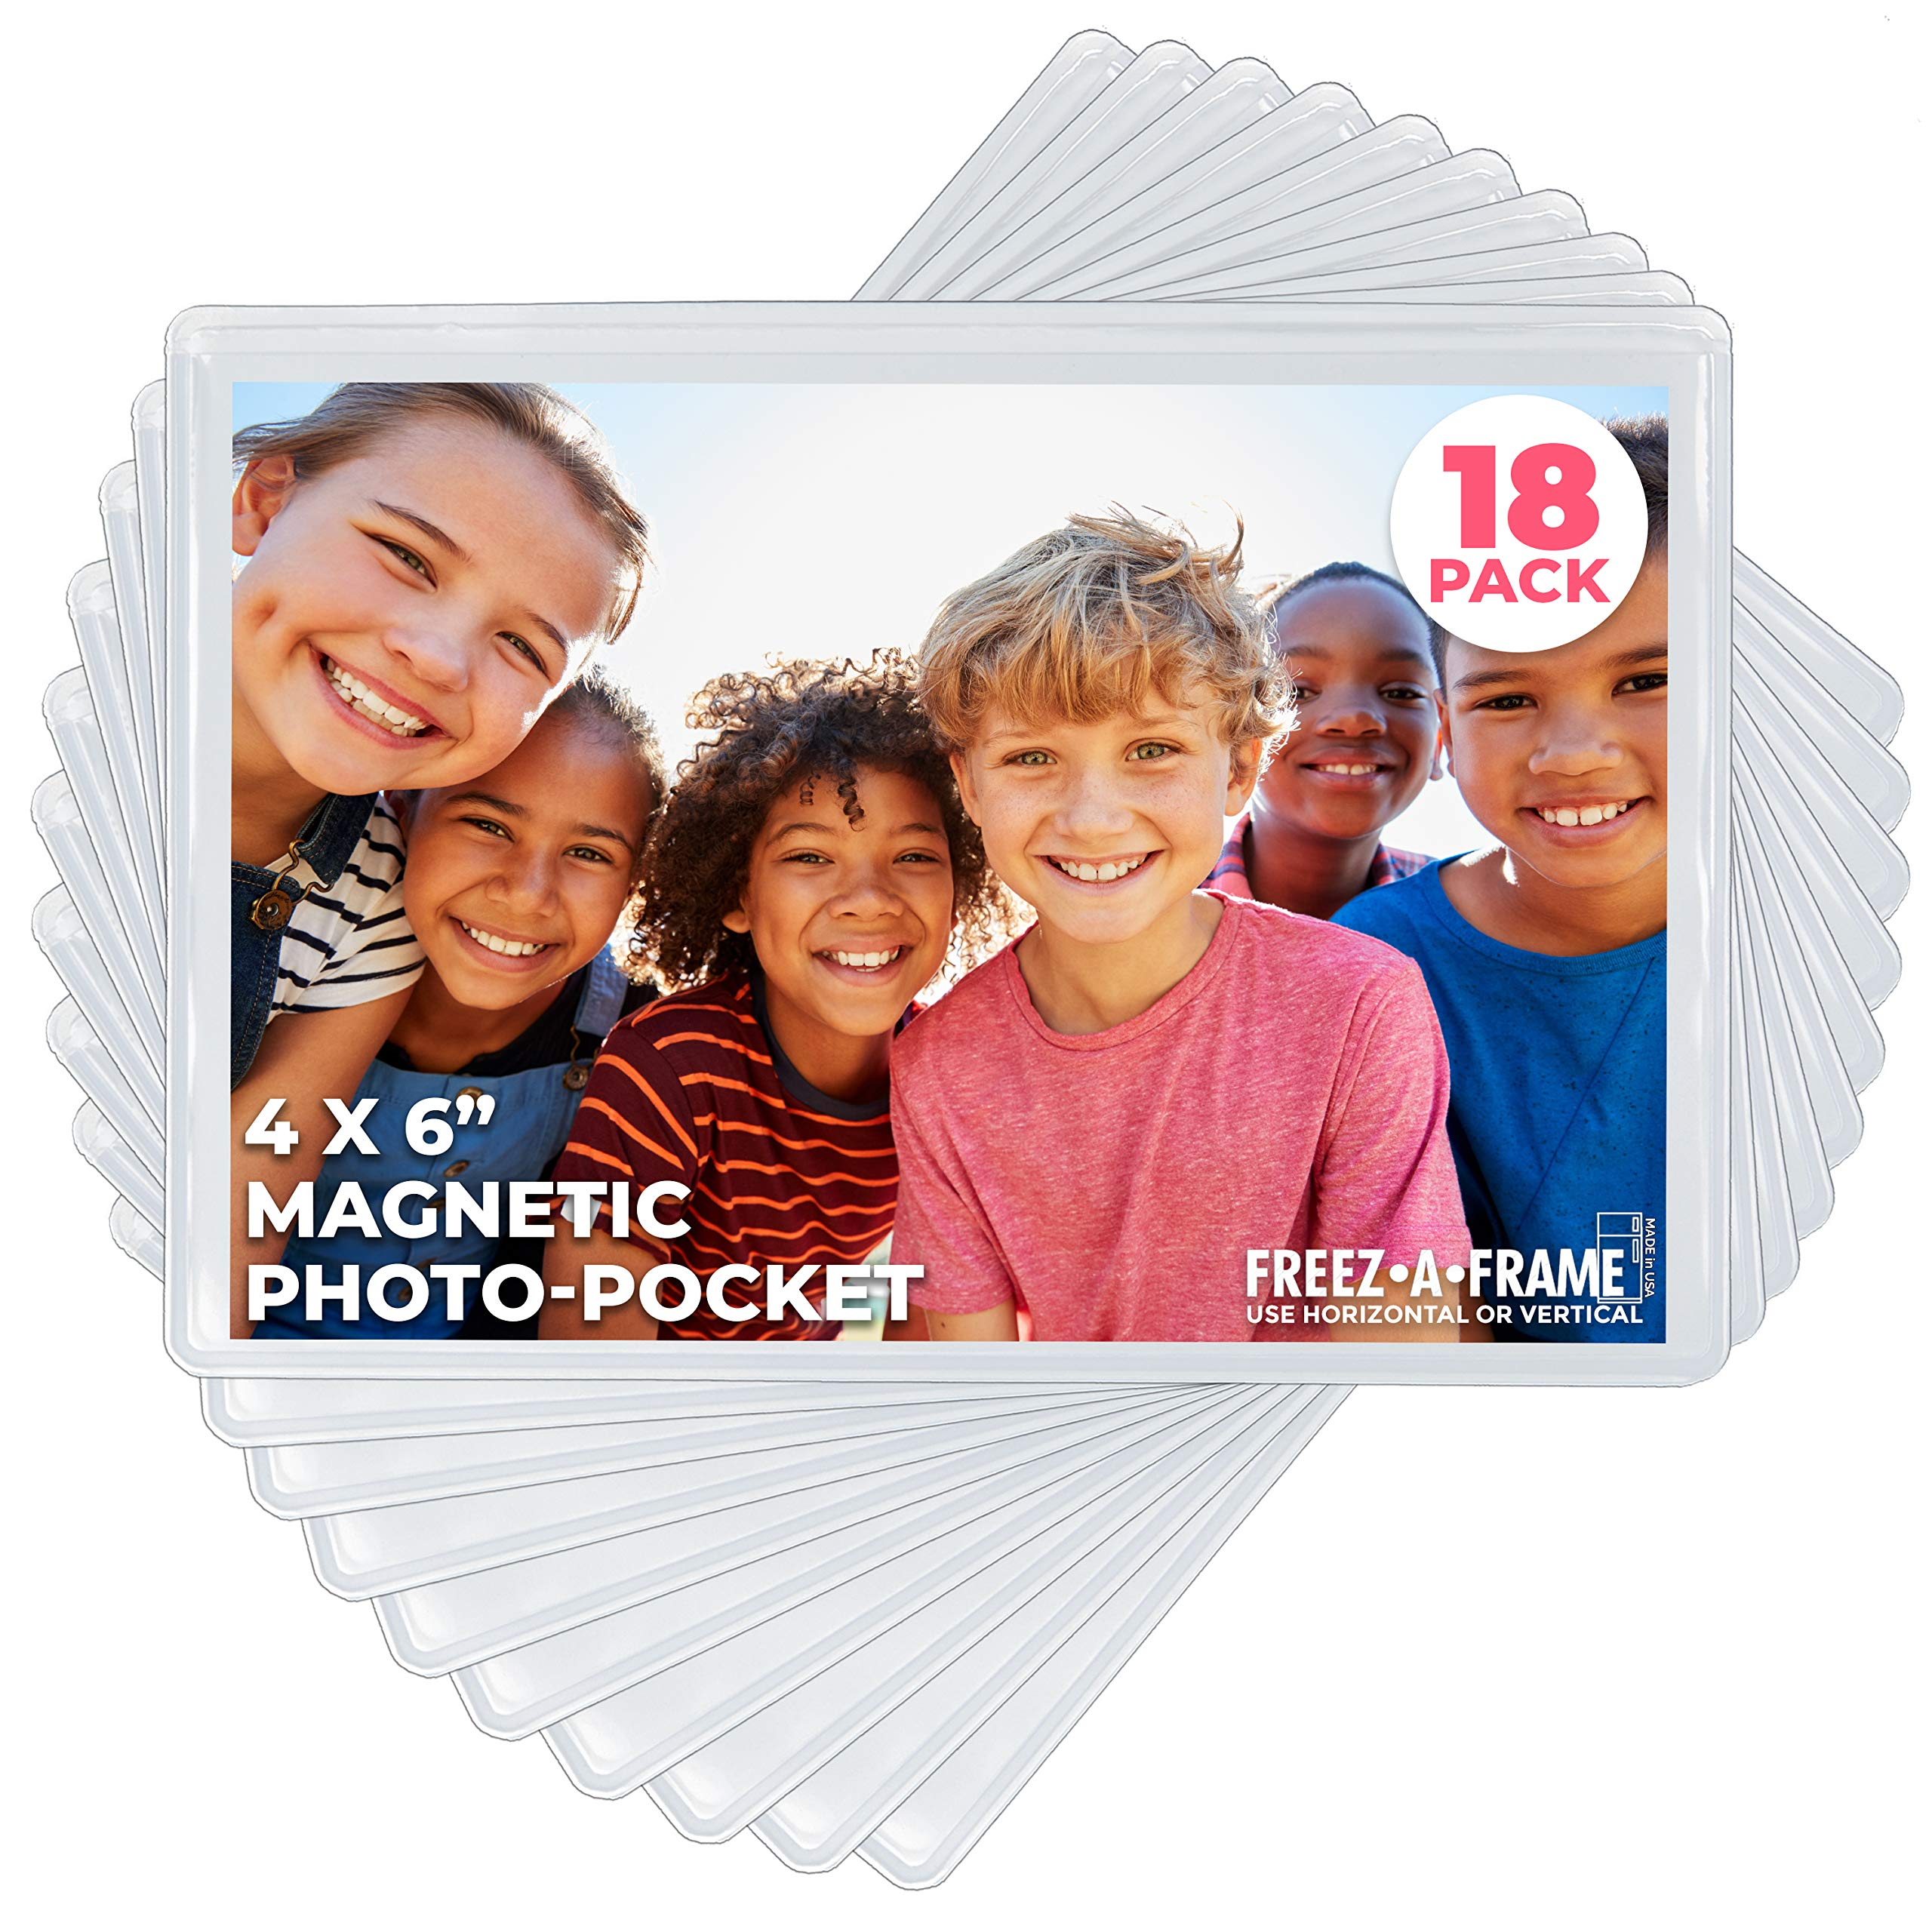 Freez A Frame Clear Magnetic Picture Frame Pockets For Refrigerator School Locker, or any Magnetic Surface 18 Pack Holds 4x6 Photos (4 x 6) by Freez A Frame